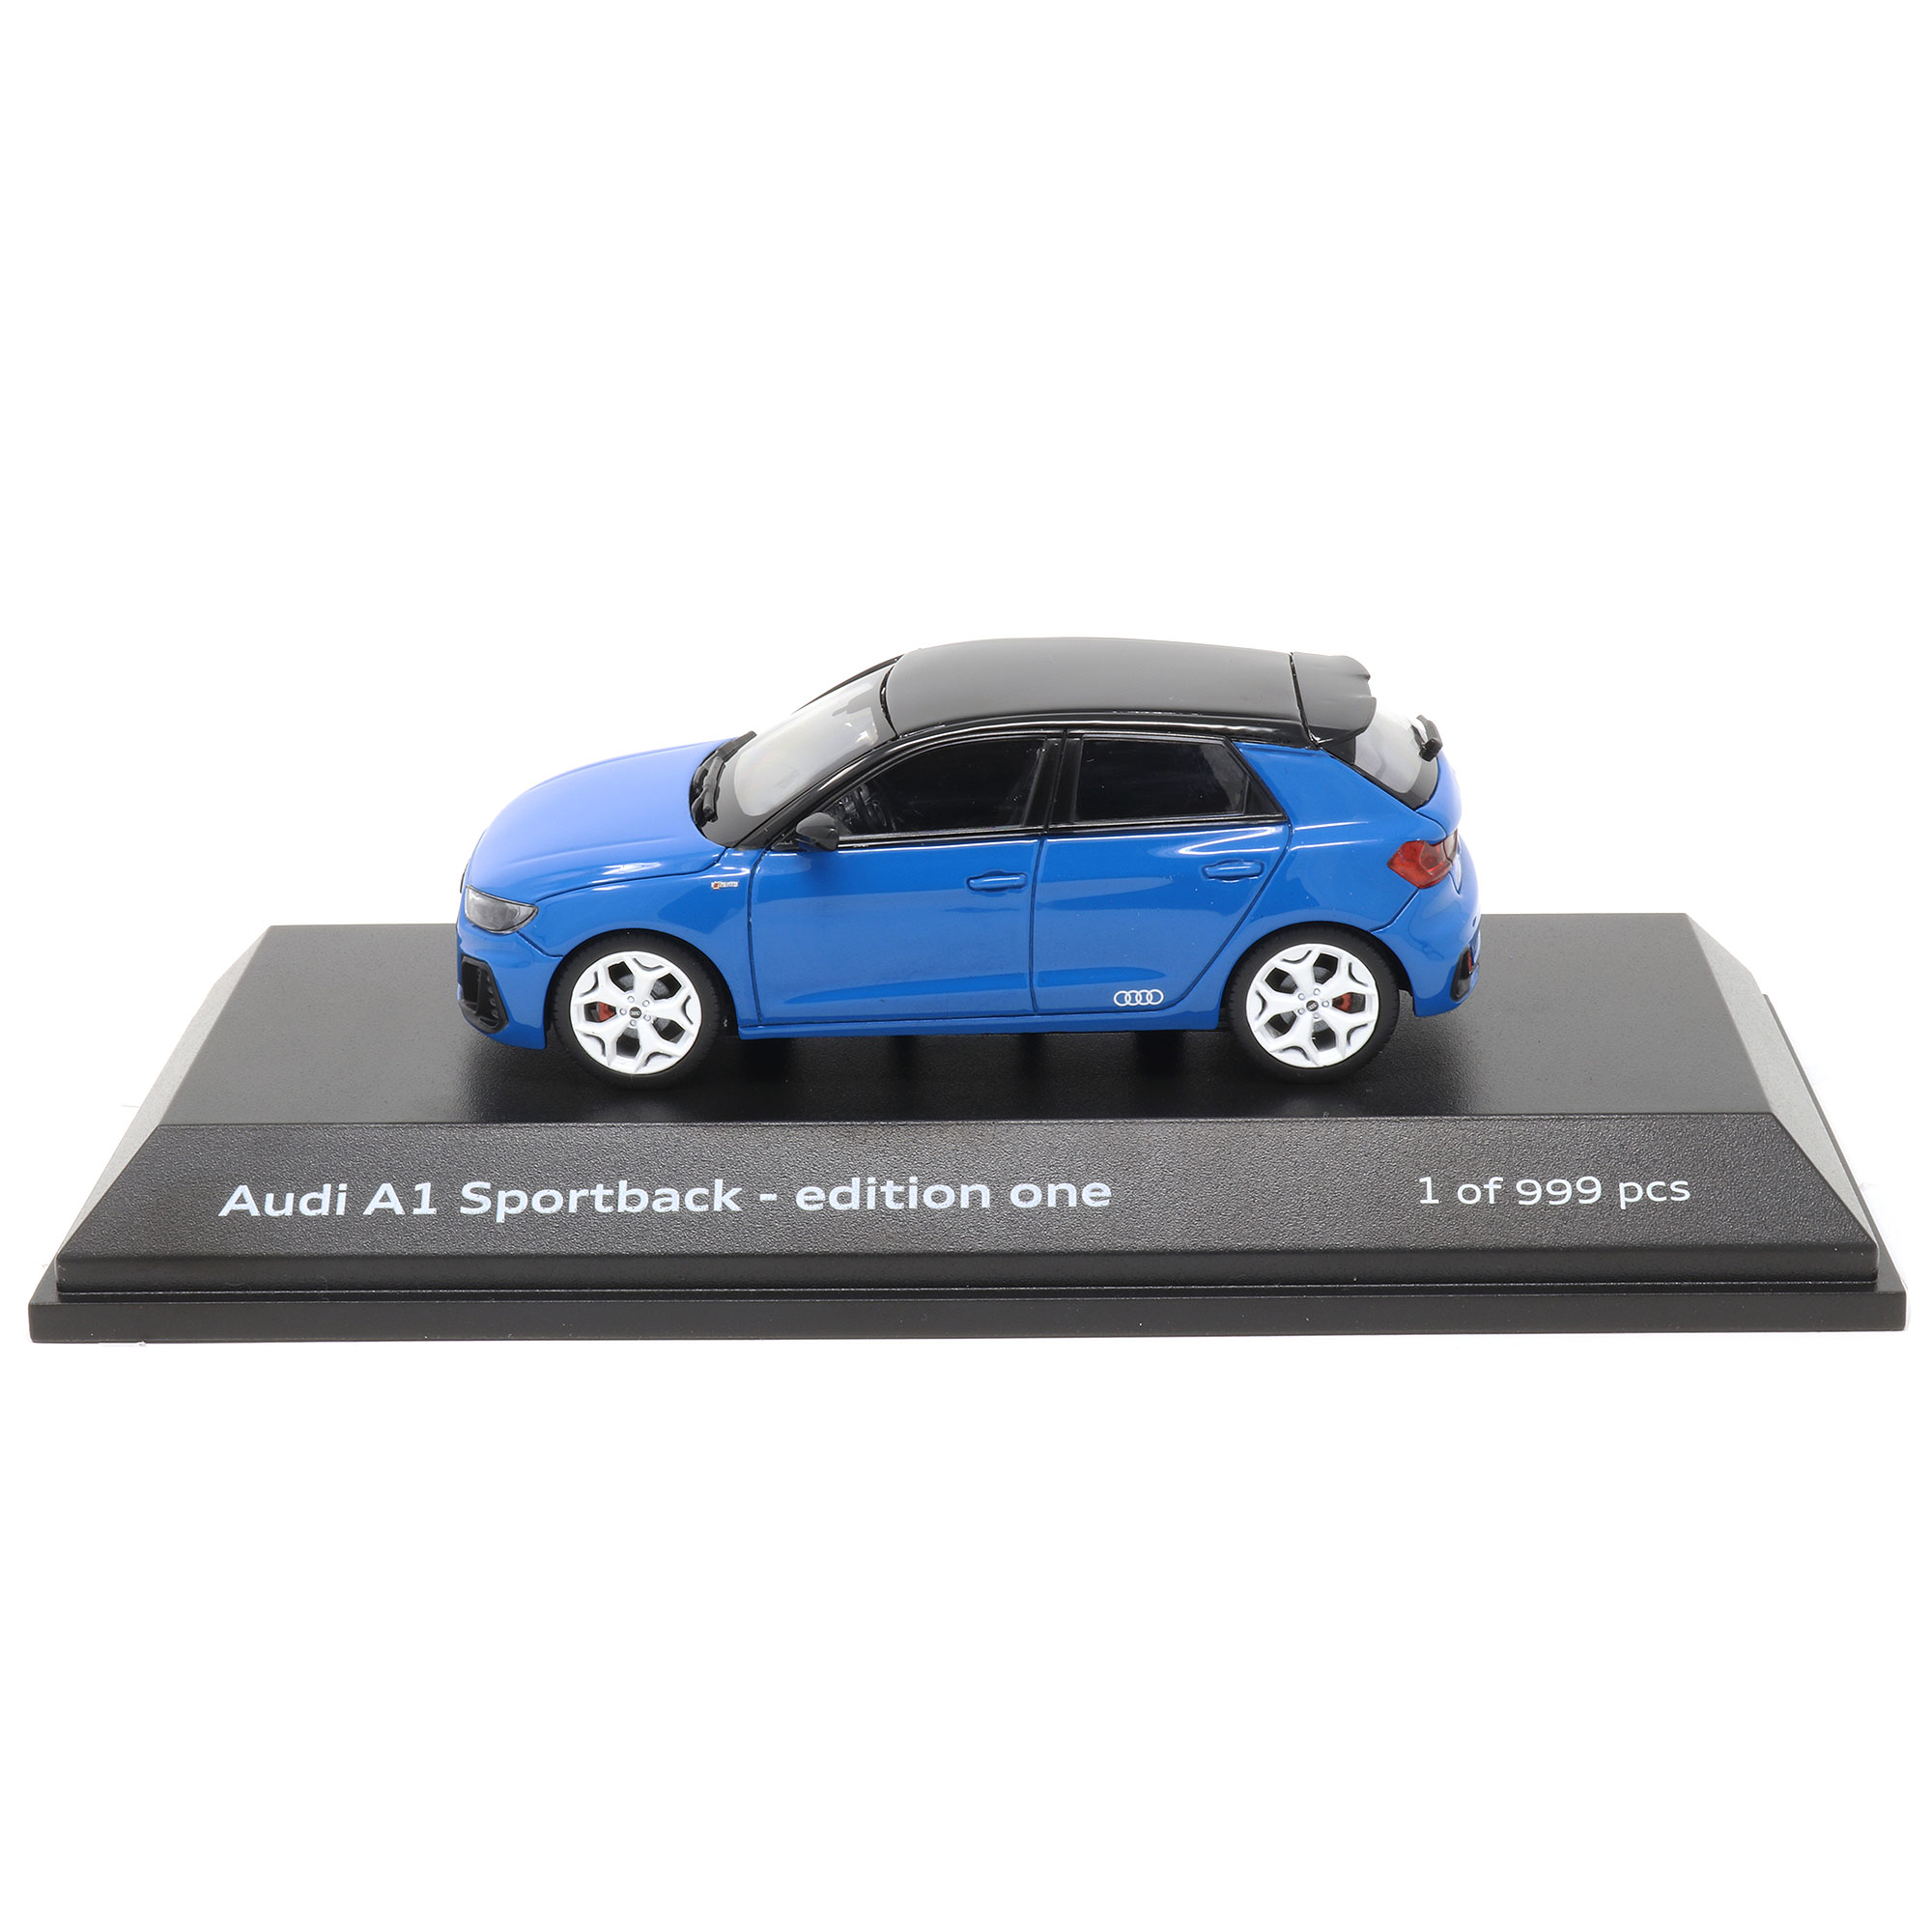 1:43 Turboblau 5011811031 Audi A1 Sportback edition one